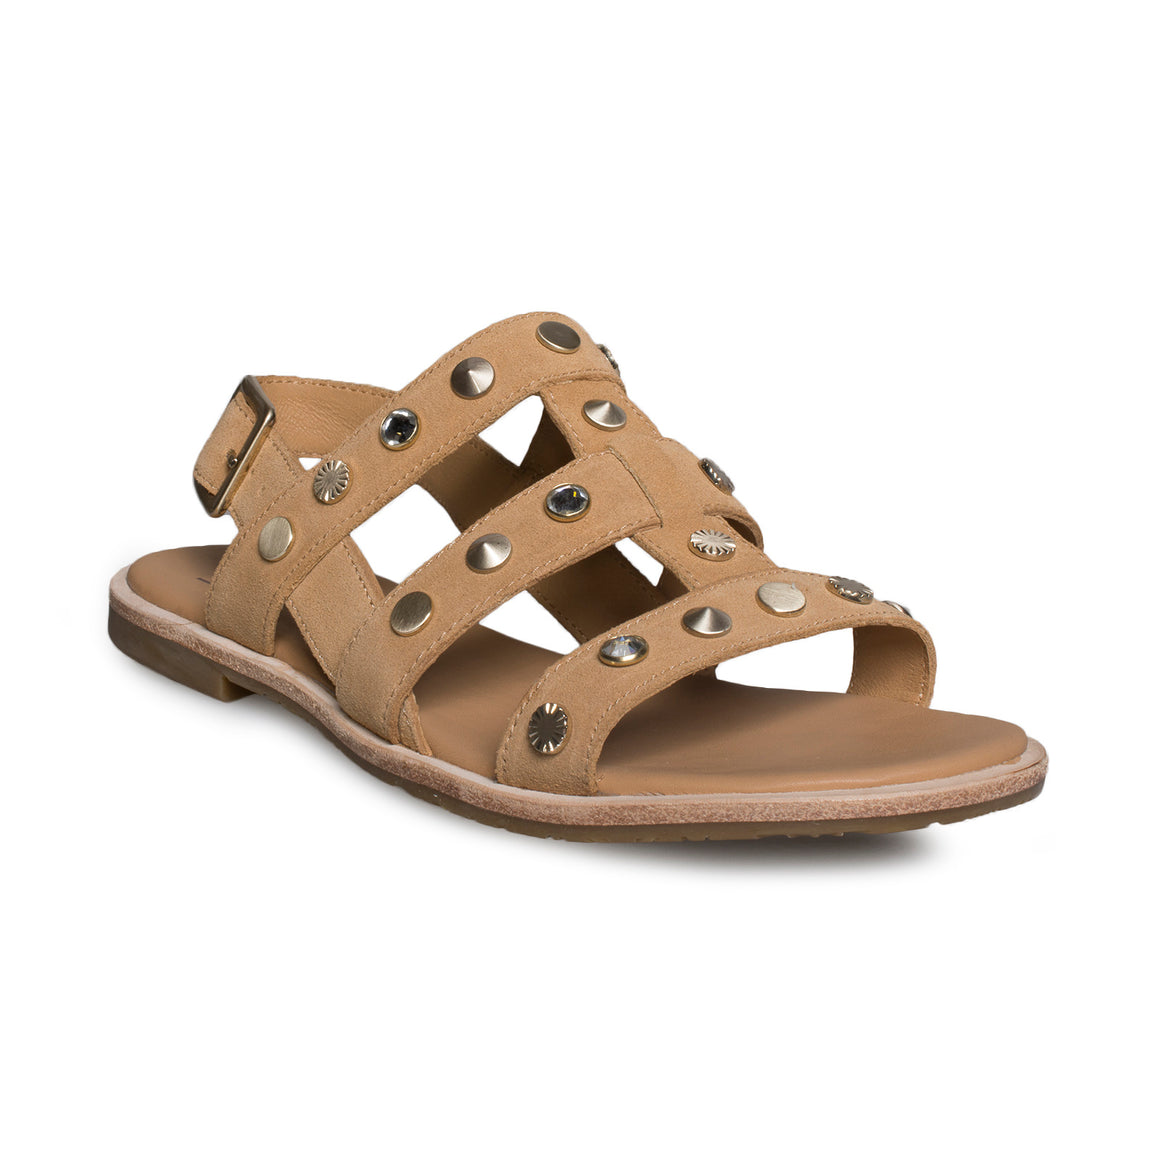 UGG Zariah Studded Bling Latte Sandals - Women's